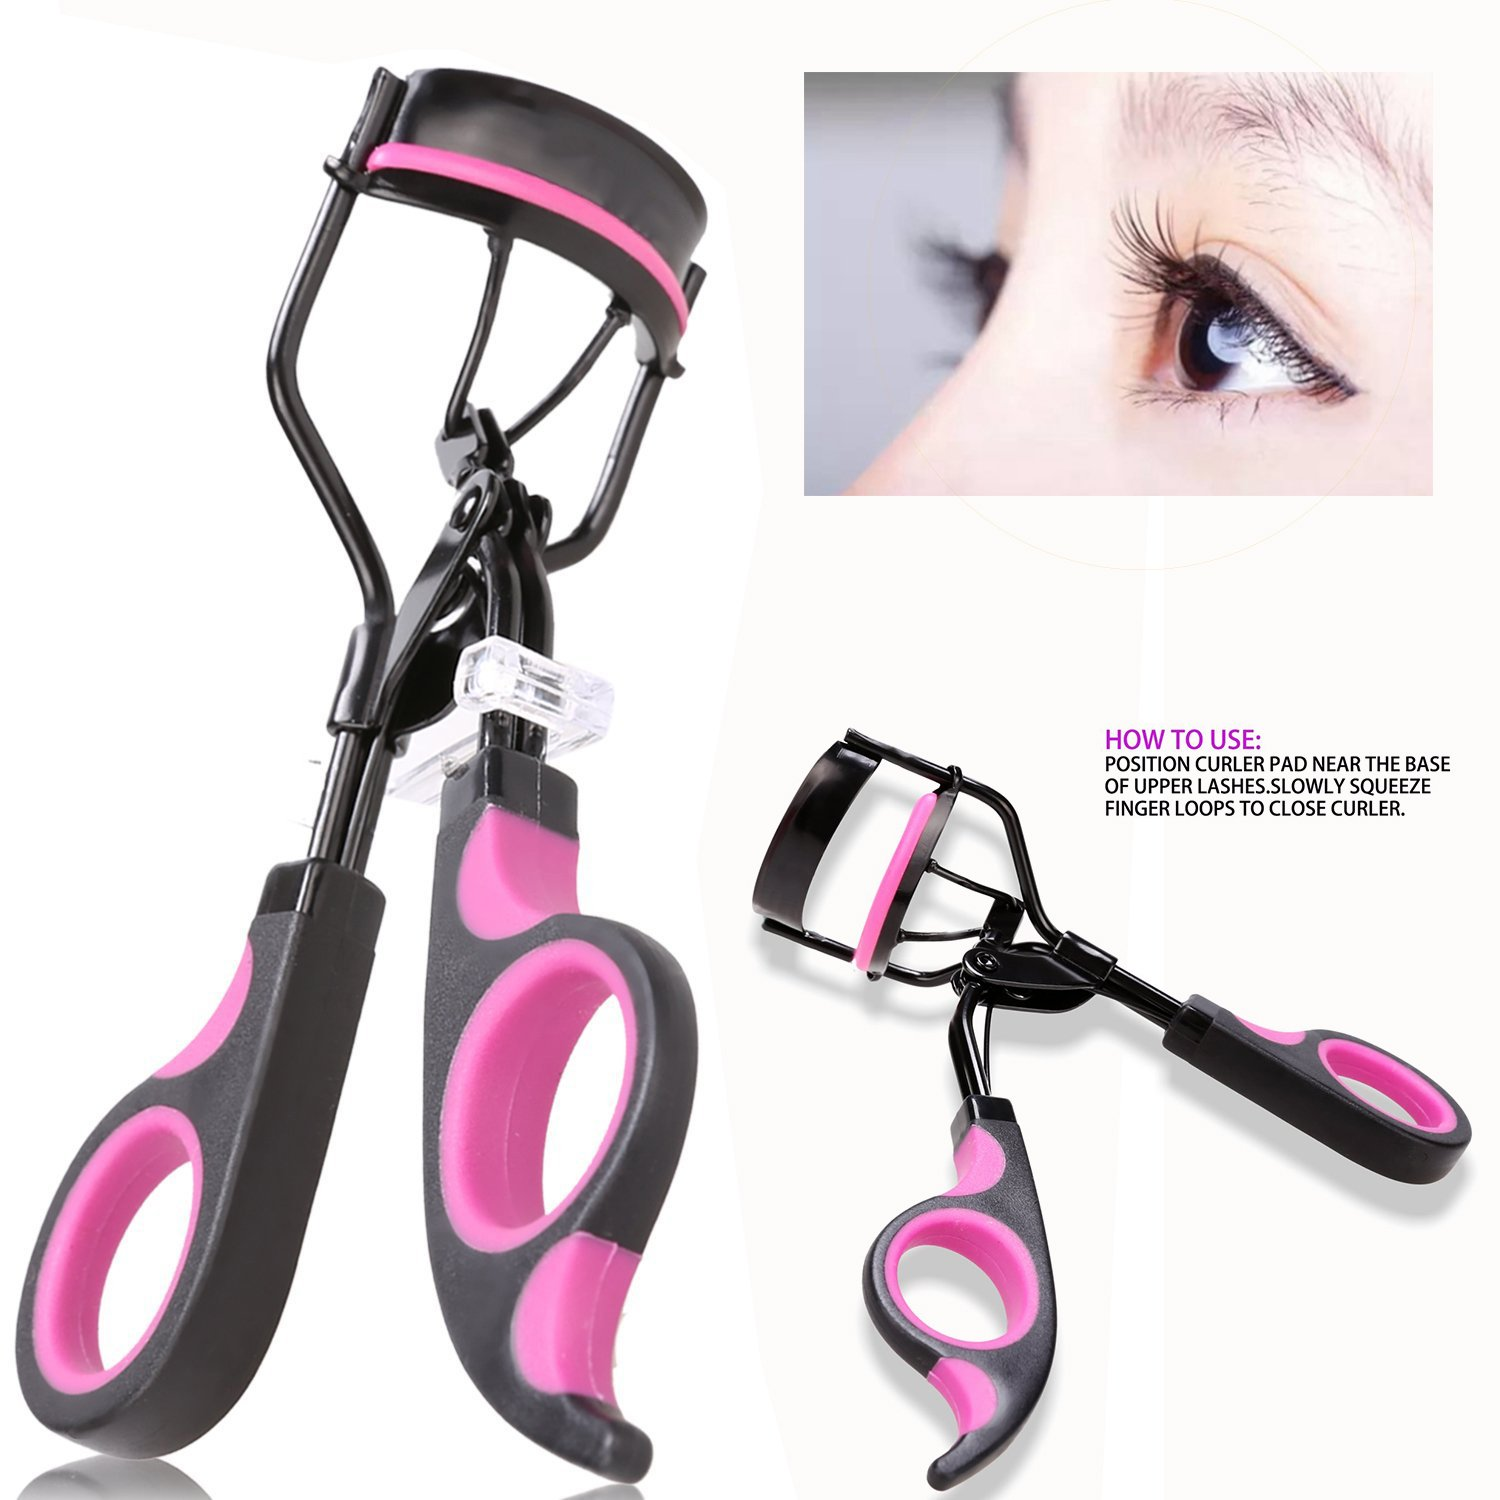 Itian Professional Eyelash Curler Tool With Silicone Refill Pad For